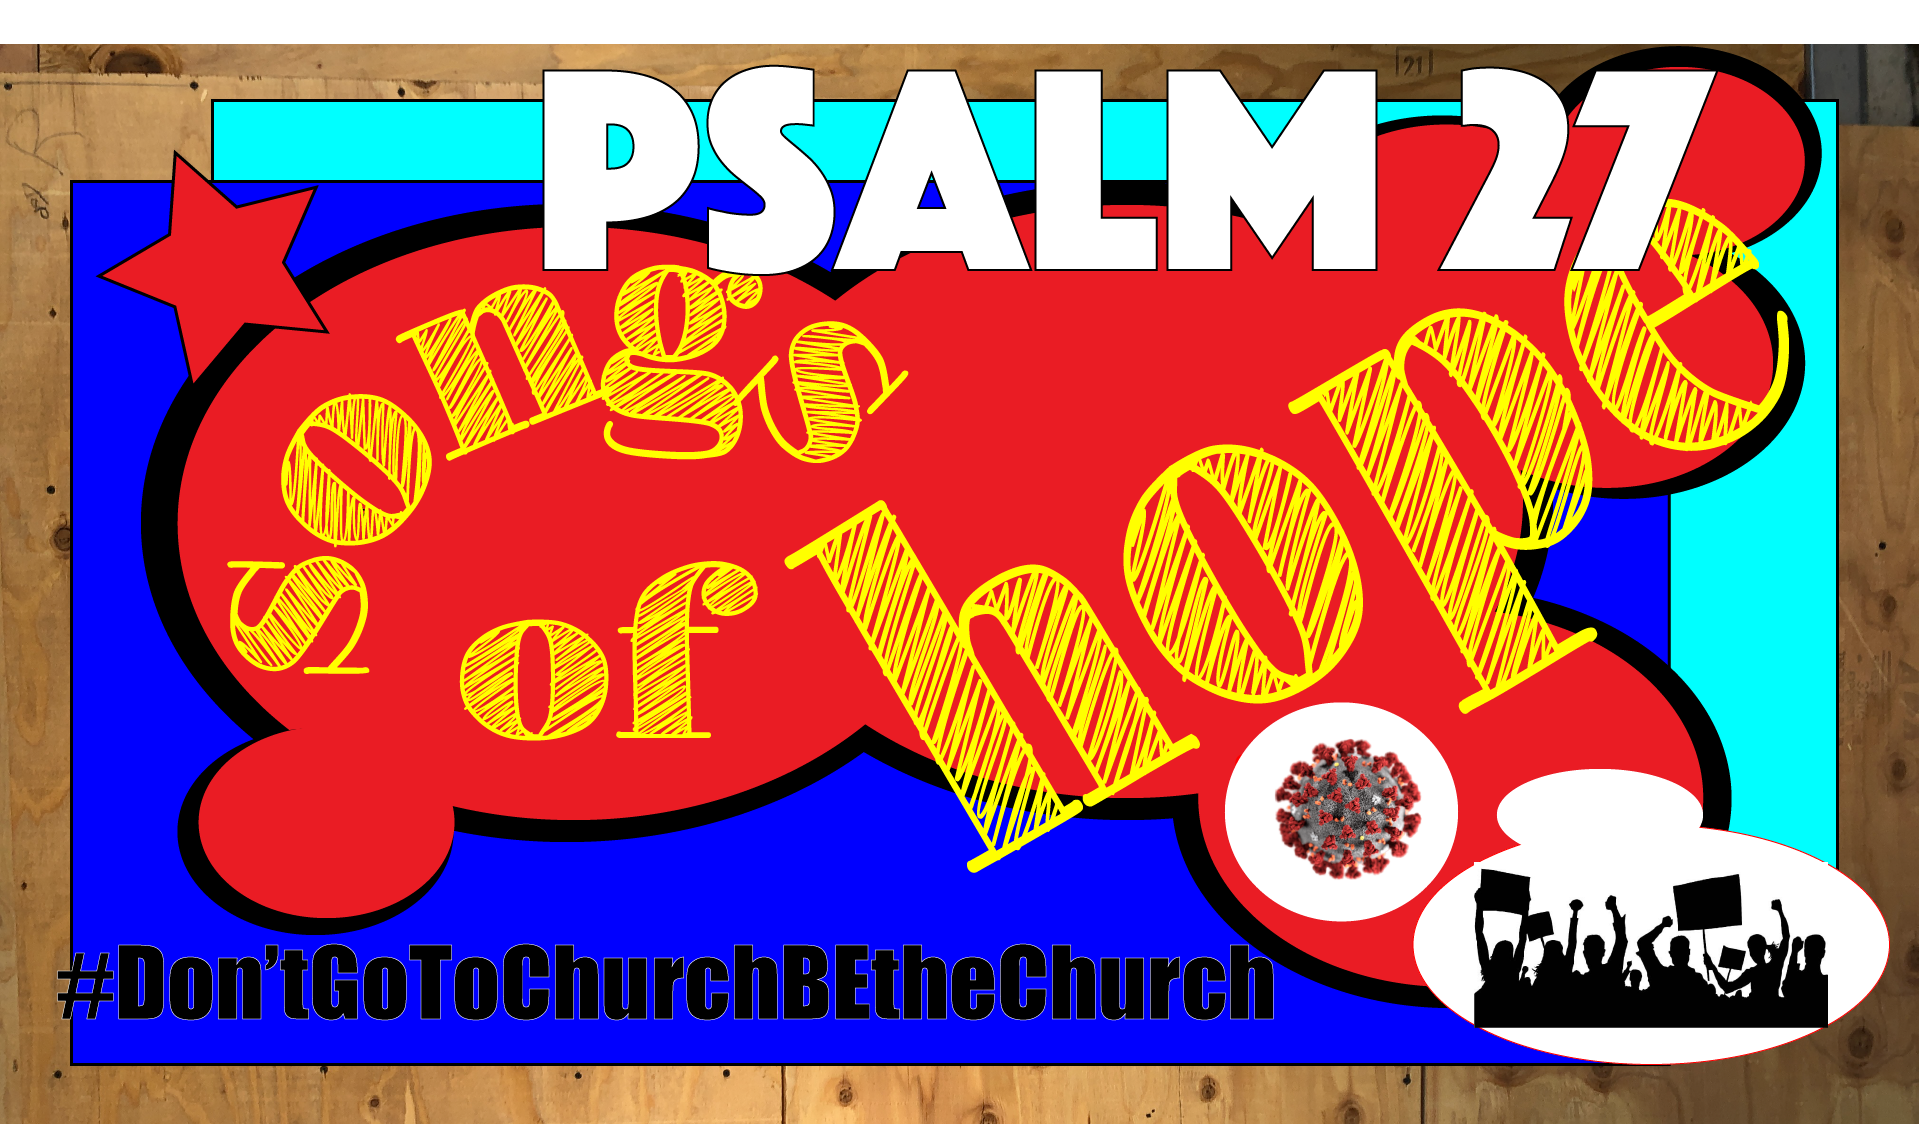 songs of hope icon Psalm 27